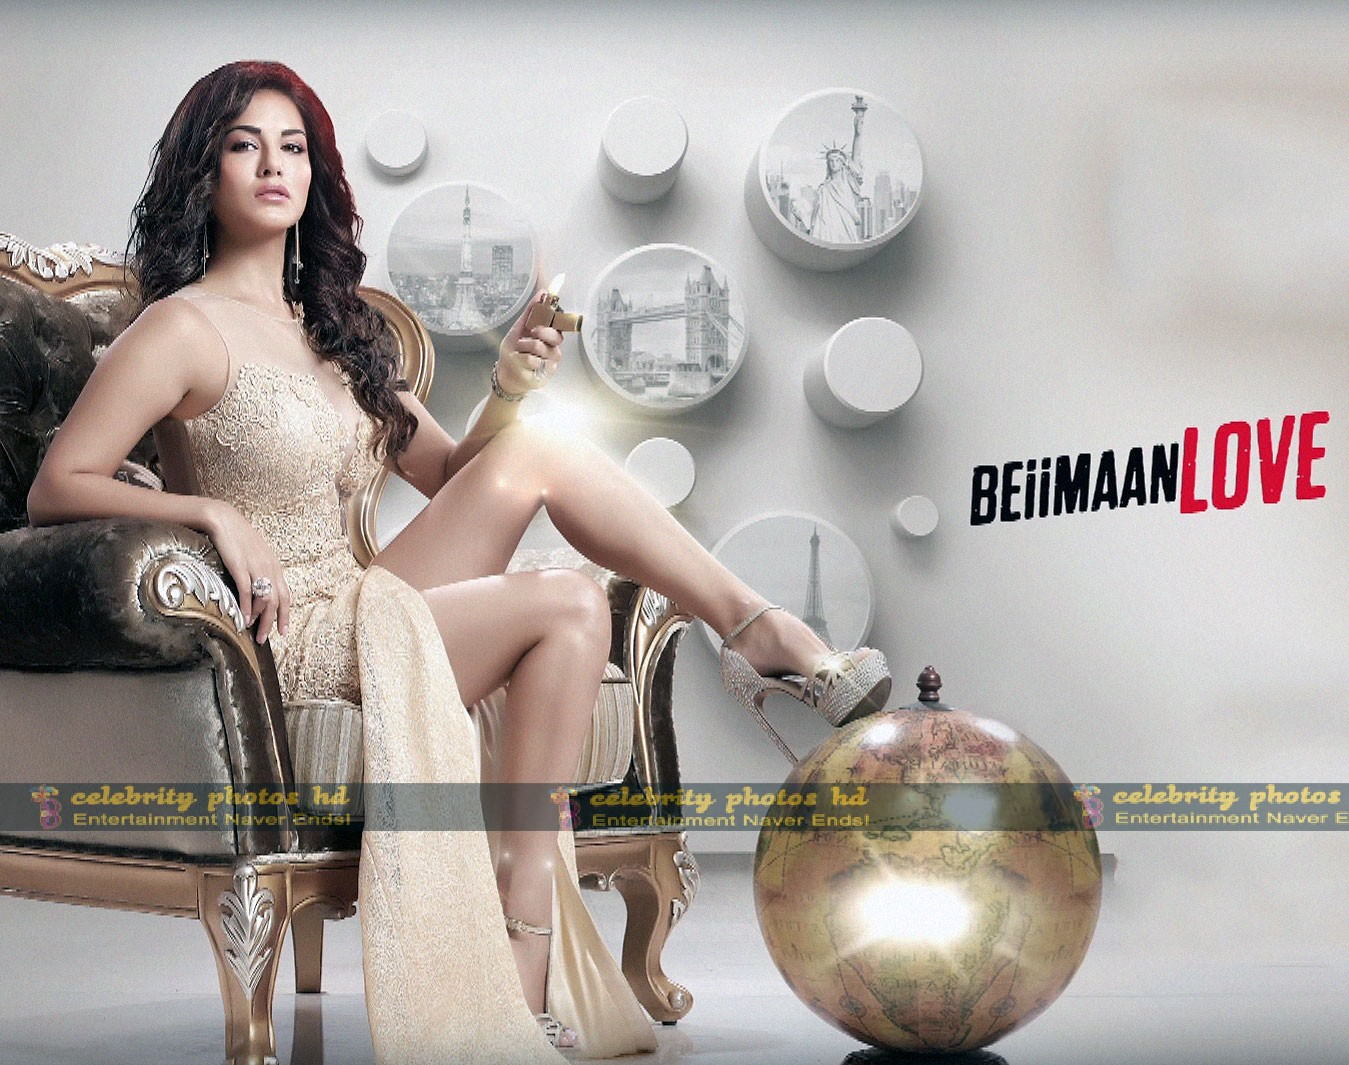 Sunny-Leone-in-Beiimaan-Love-Movie-Poster